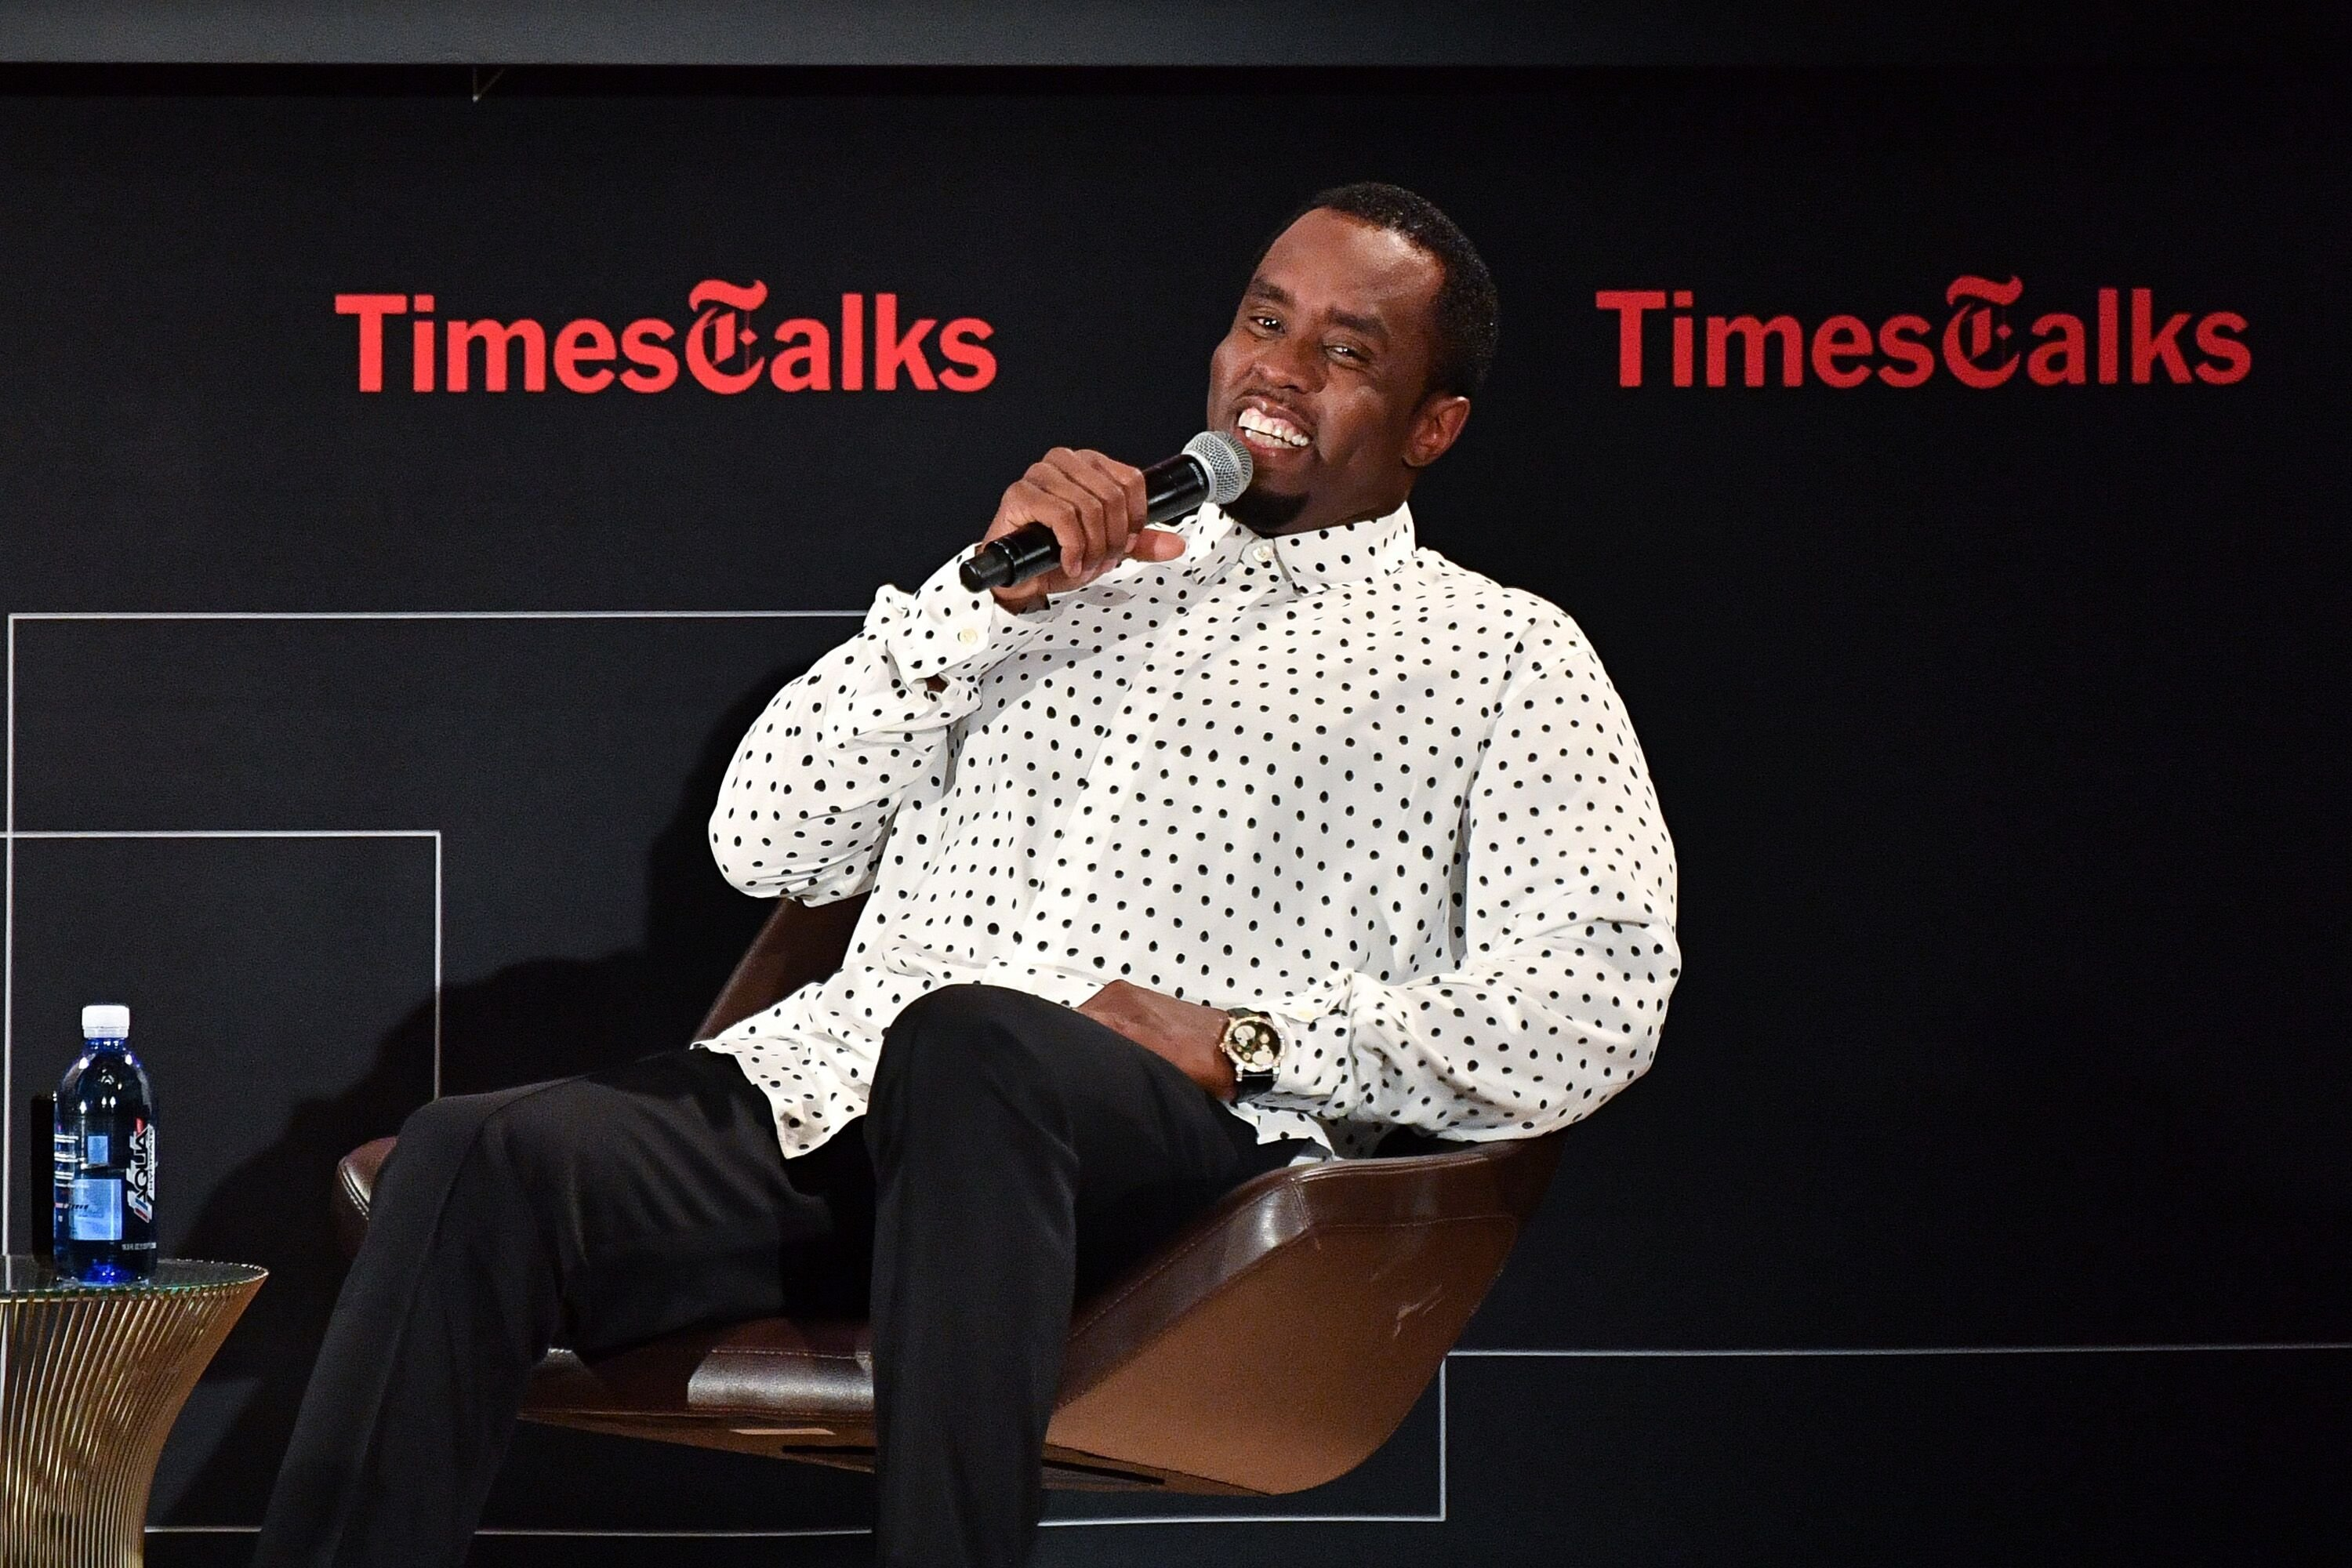 Diddy on Times Talks | Source: Getty Images/GlobalImagesUkraine